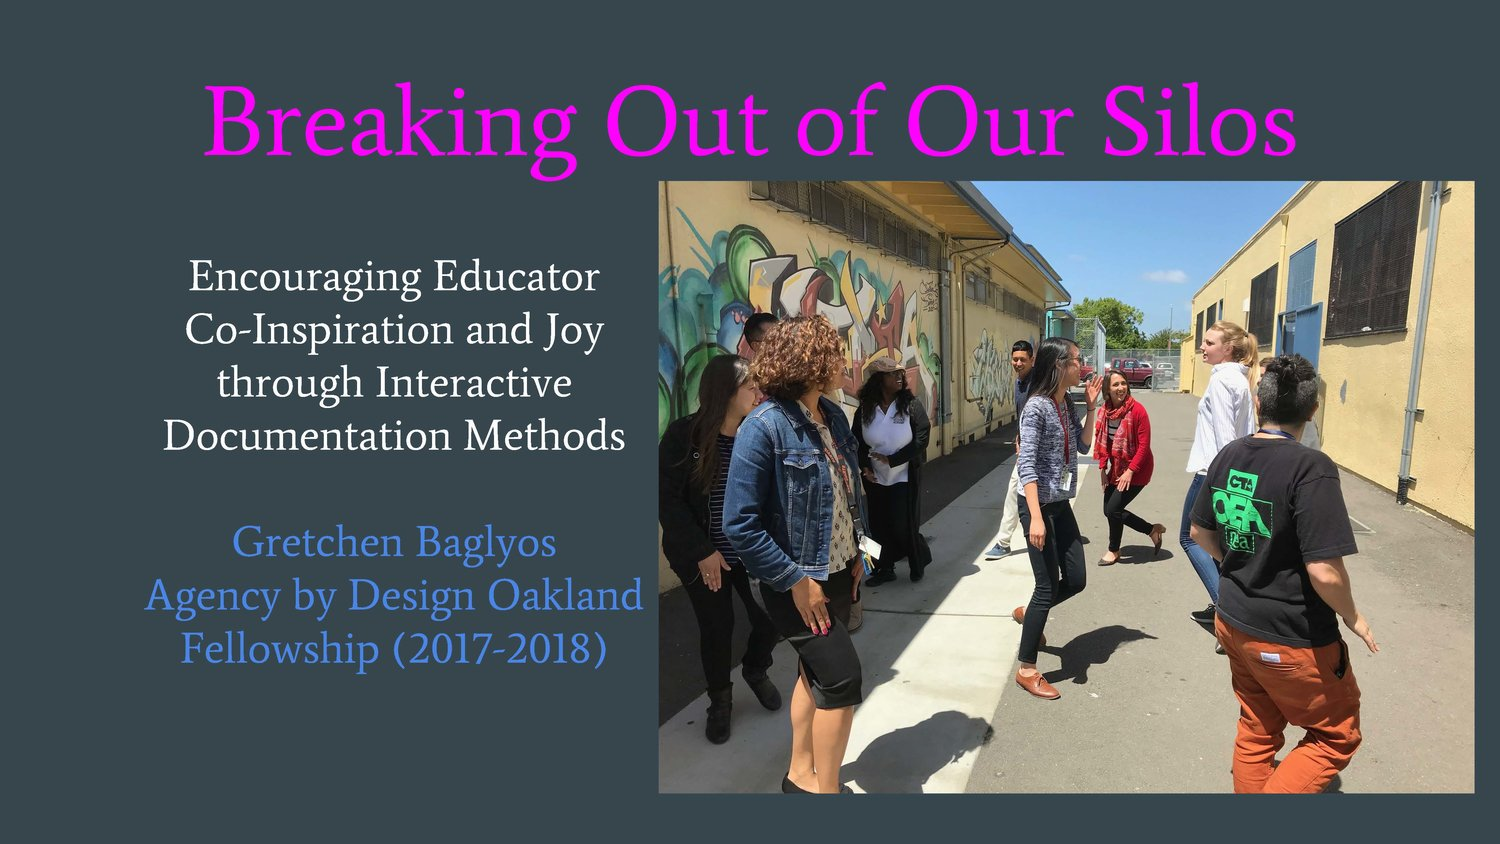 BREAKING OUT OF OUR SILOS: ENCOURAGING EDUCATOR CO-INSPIRATION AND JOY THROUGH INTERACTIVE DOCUMENTATION METHODS   By  Gretchen Baglyos , 2017-2018 Teaching Fellow, Arts Integration Specialist & Choir Teacher, Alliance Academy, Oakland